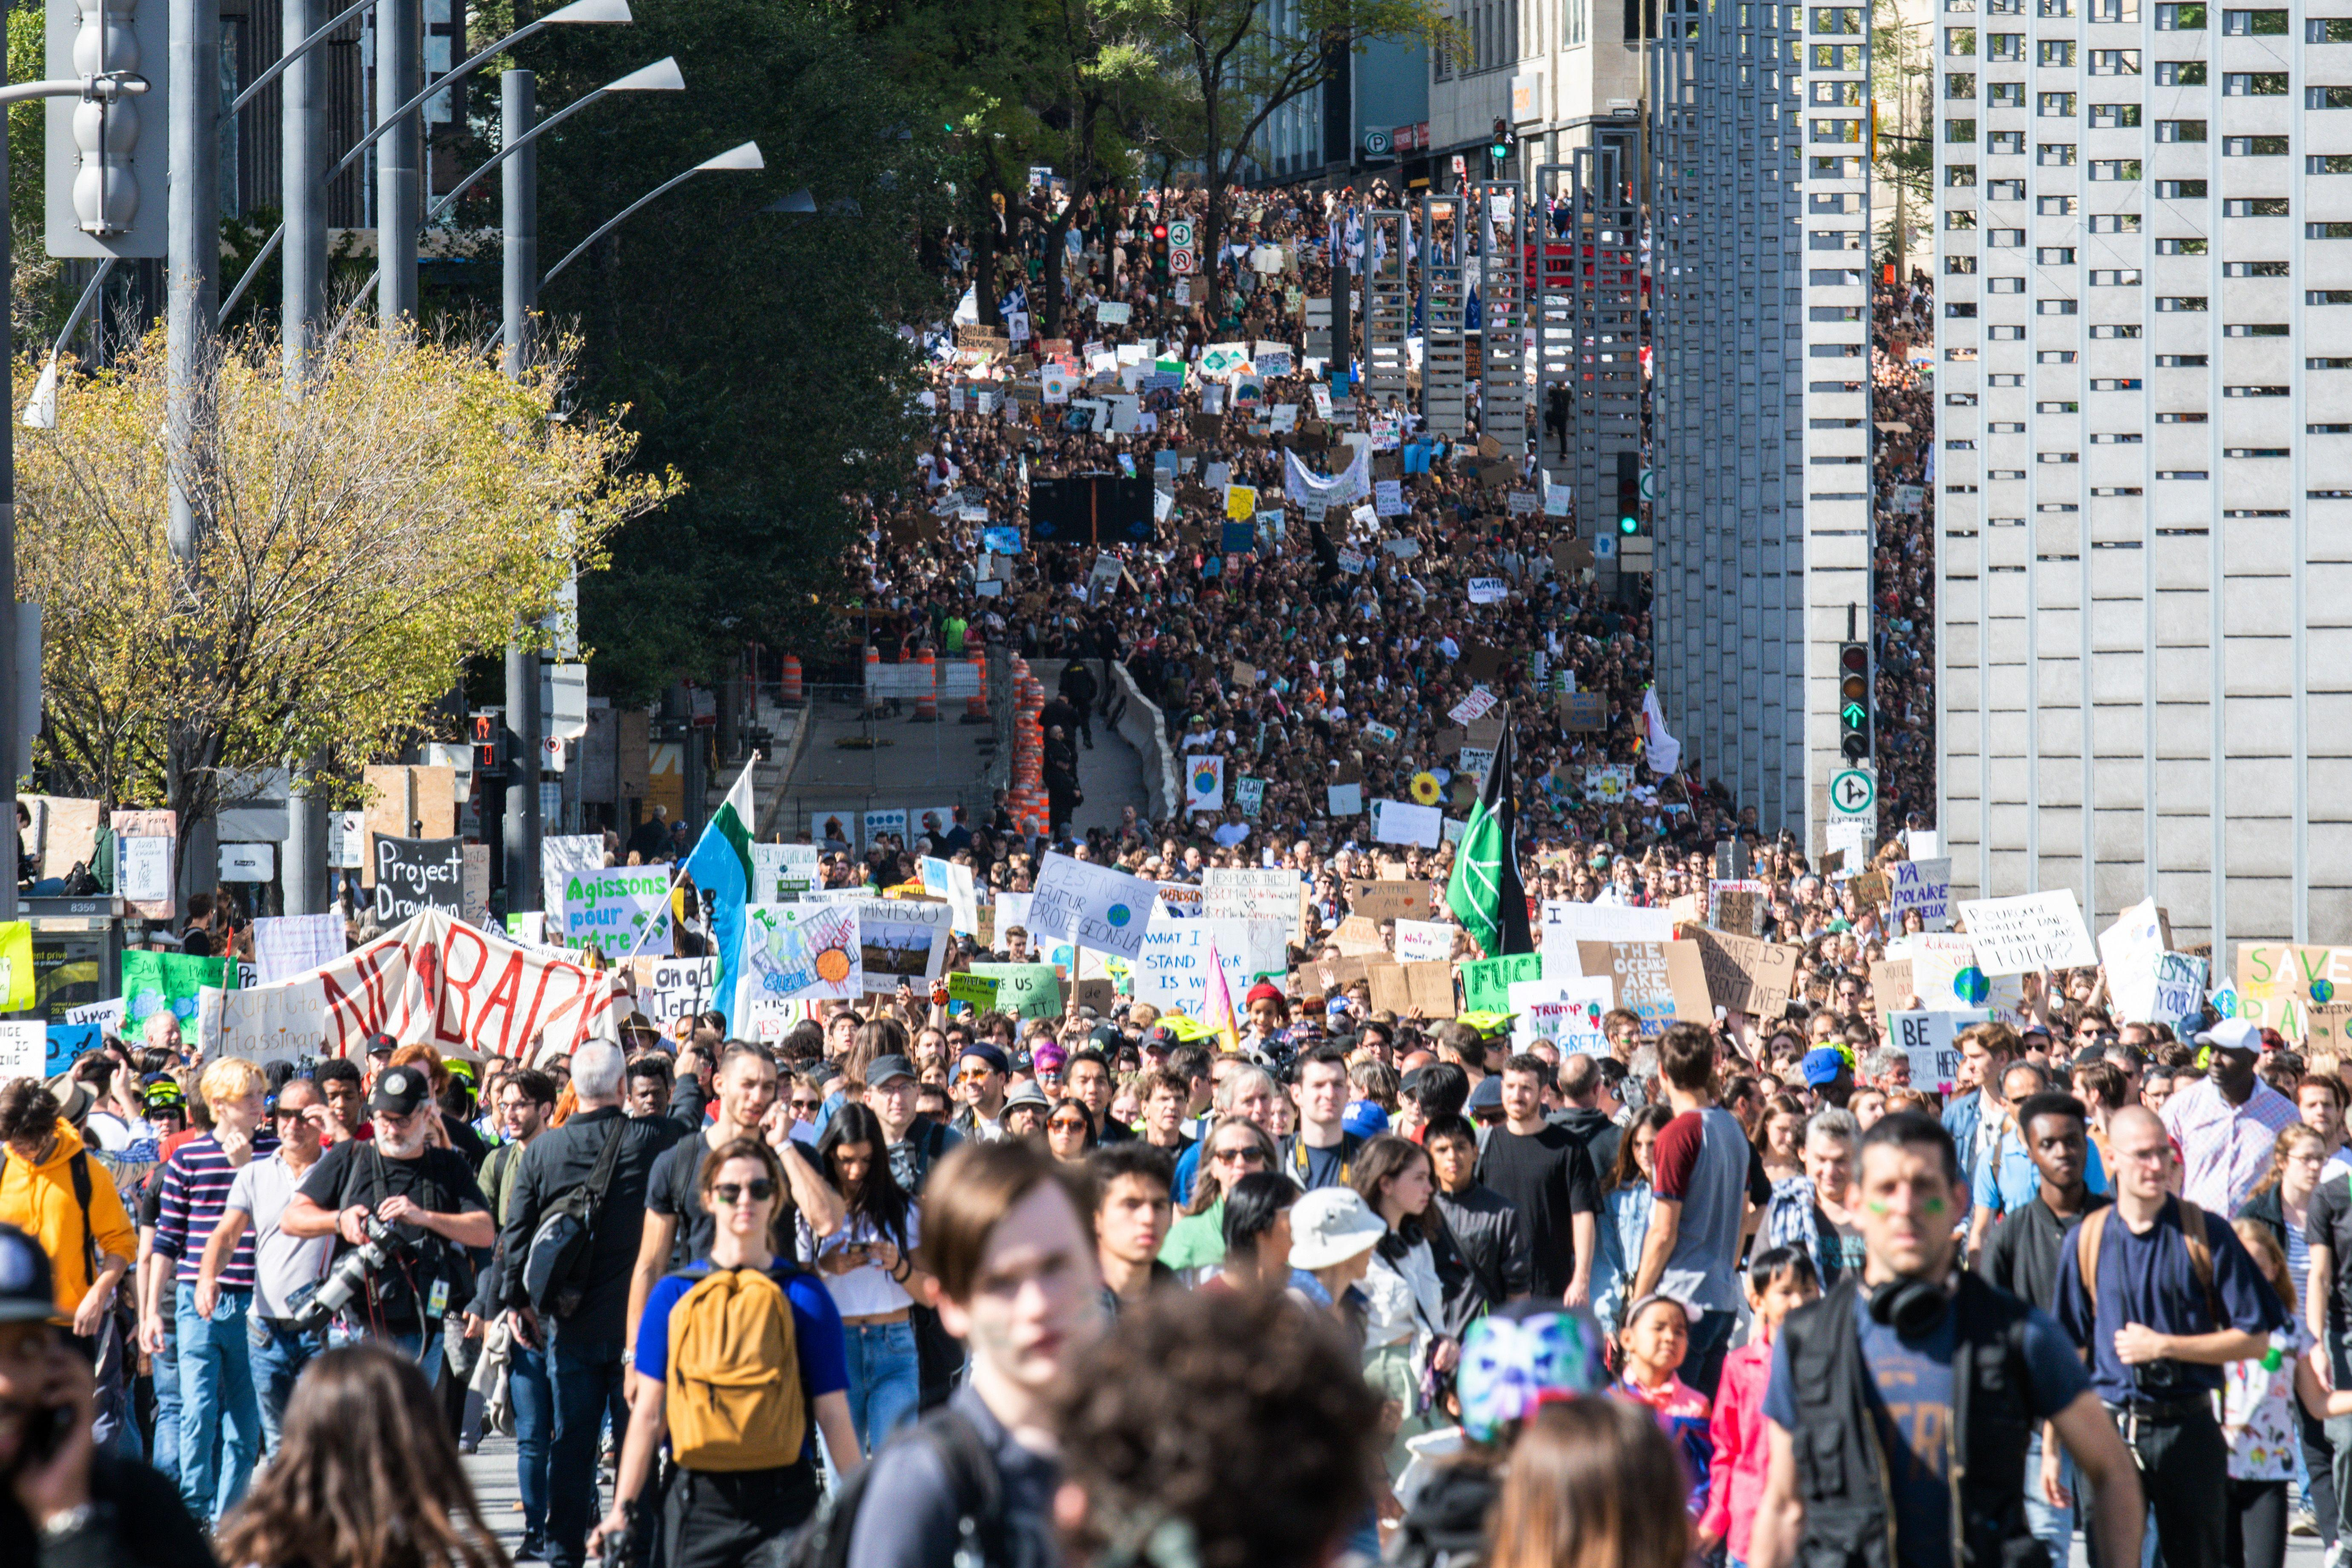 Greta Thunberg leads 500,000 people at Montreal climate rally